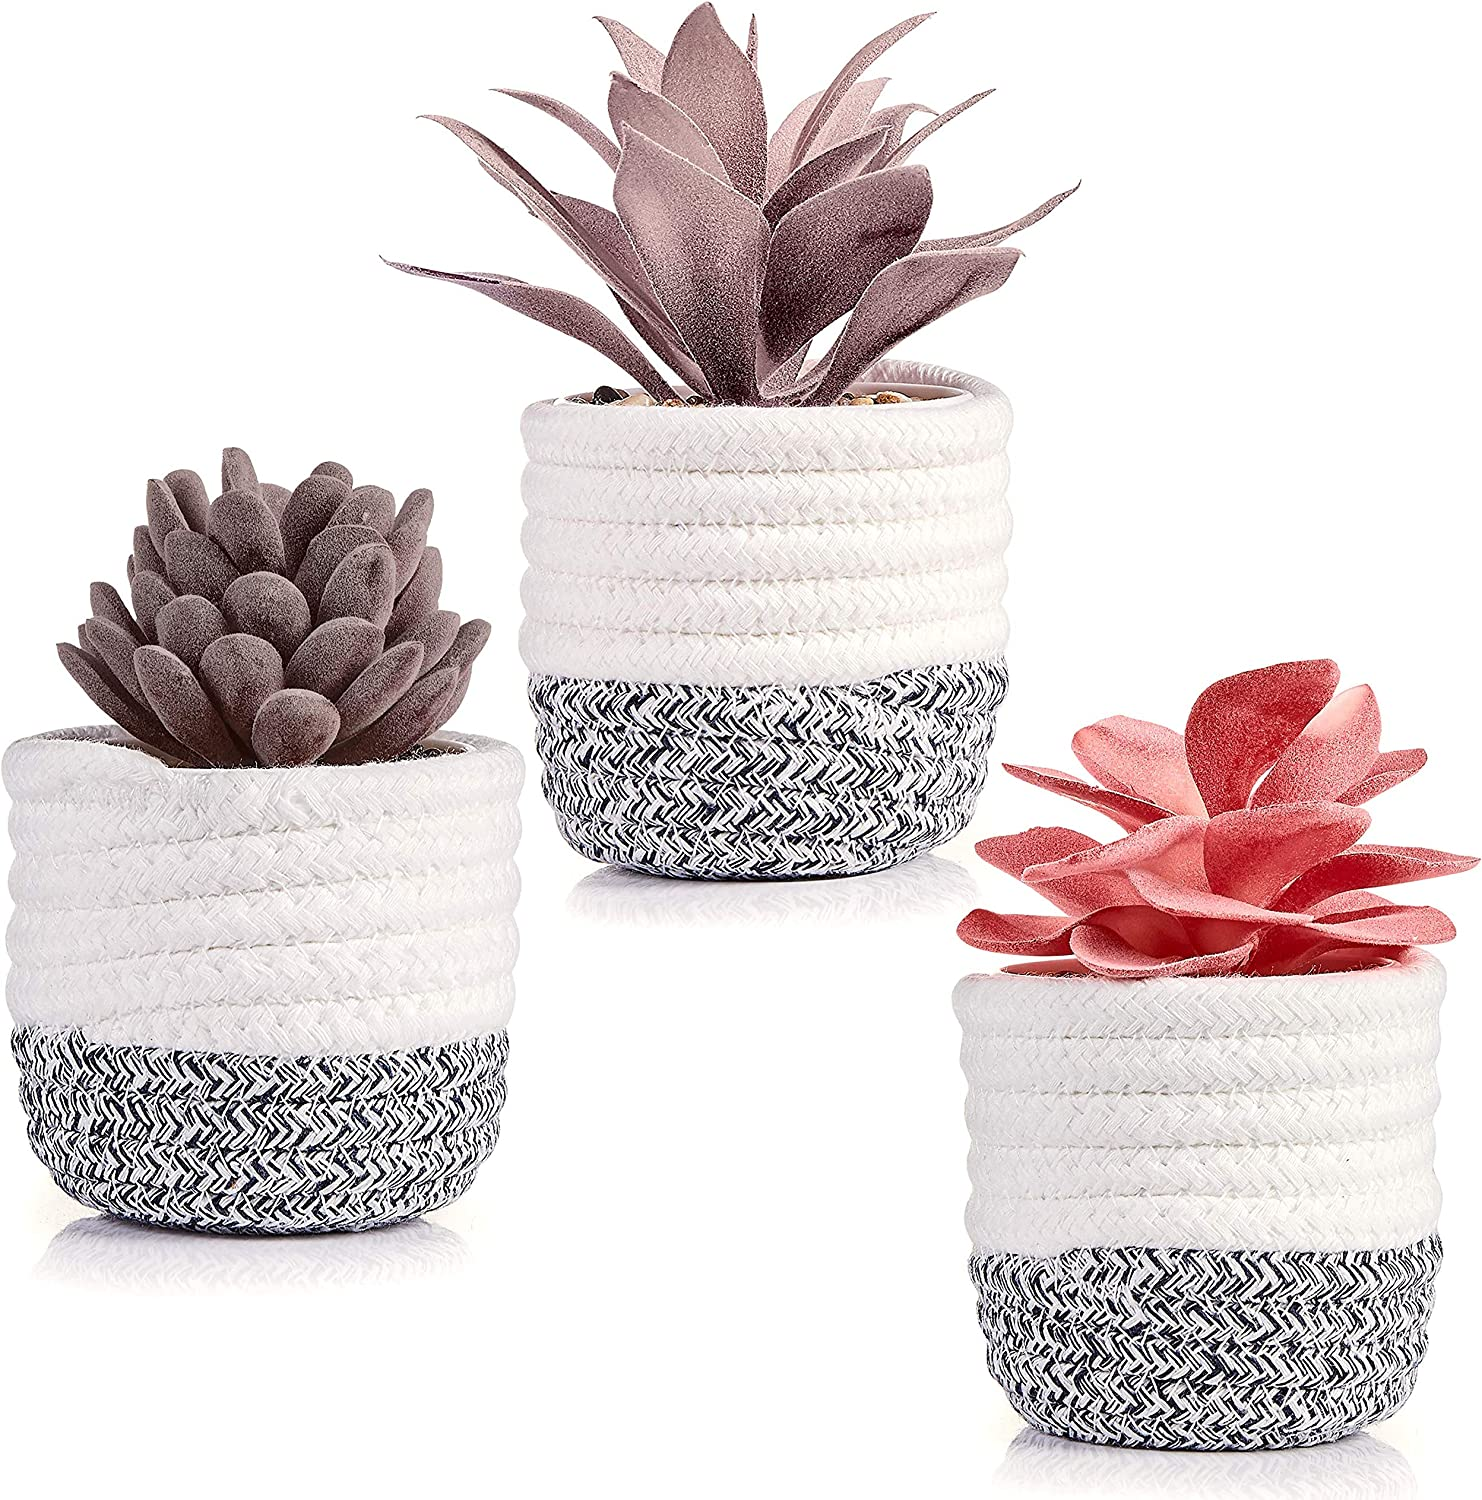 VIVERIE Artificial Succulents in Plant Basket for Shelf Decor, Office Desk, Living Room Table and Bedroom Decorations - Set of 3 Purple and Red Fake Succulents with Removable Rope Basket